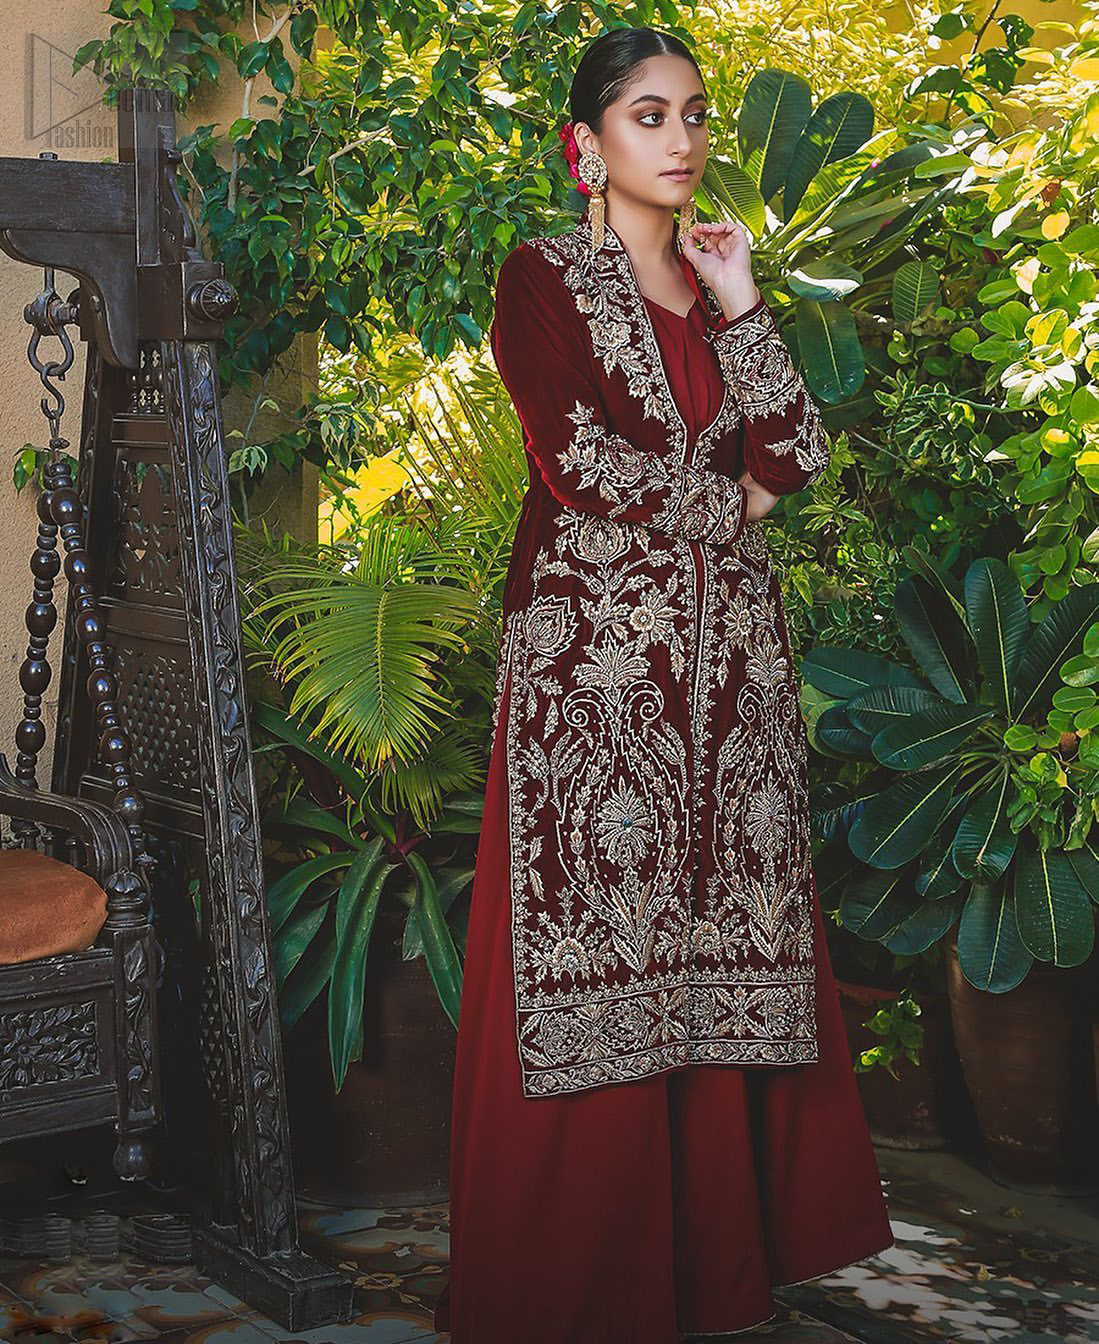 Steal the show with this endearing velvet outfit with intricate yet rich embroidery. The chic yet elegant front open shirt is decorated with embroidered patterns, embellished collar neckline and floral bunches. Hemline is even more enhanced with detailed zardozi work. The back of the shirt has a central large motif on the bodice while the zardozi work creates drama on both front and back panels. Beautifully paired up with maroon palazzo pants. Finish the look with maroon organza dupatta adorned with tiny floral motifs all over.